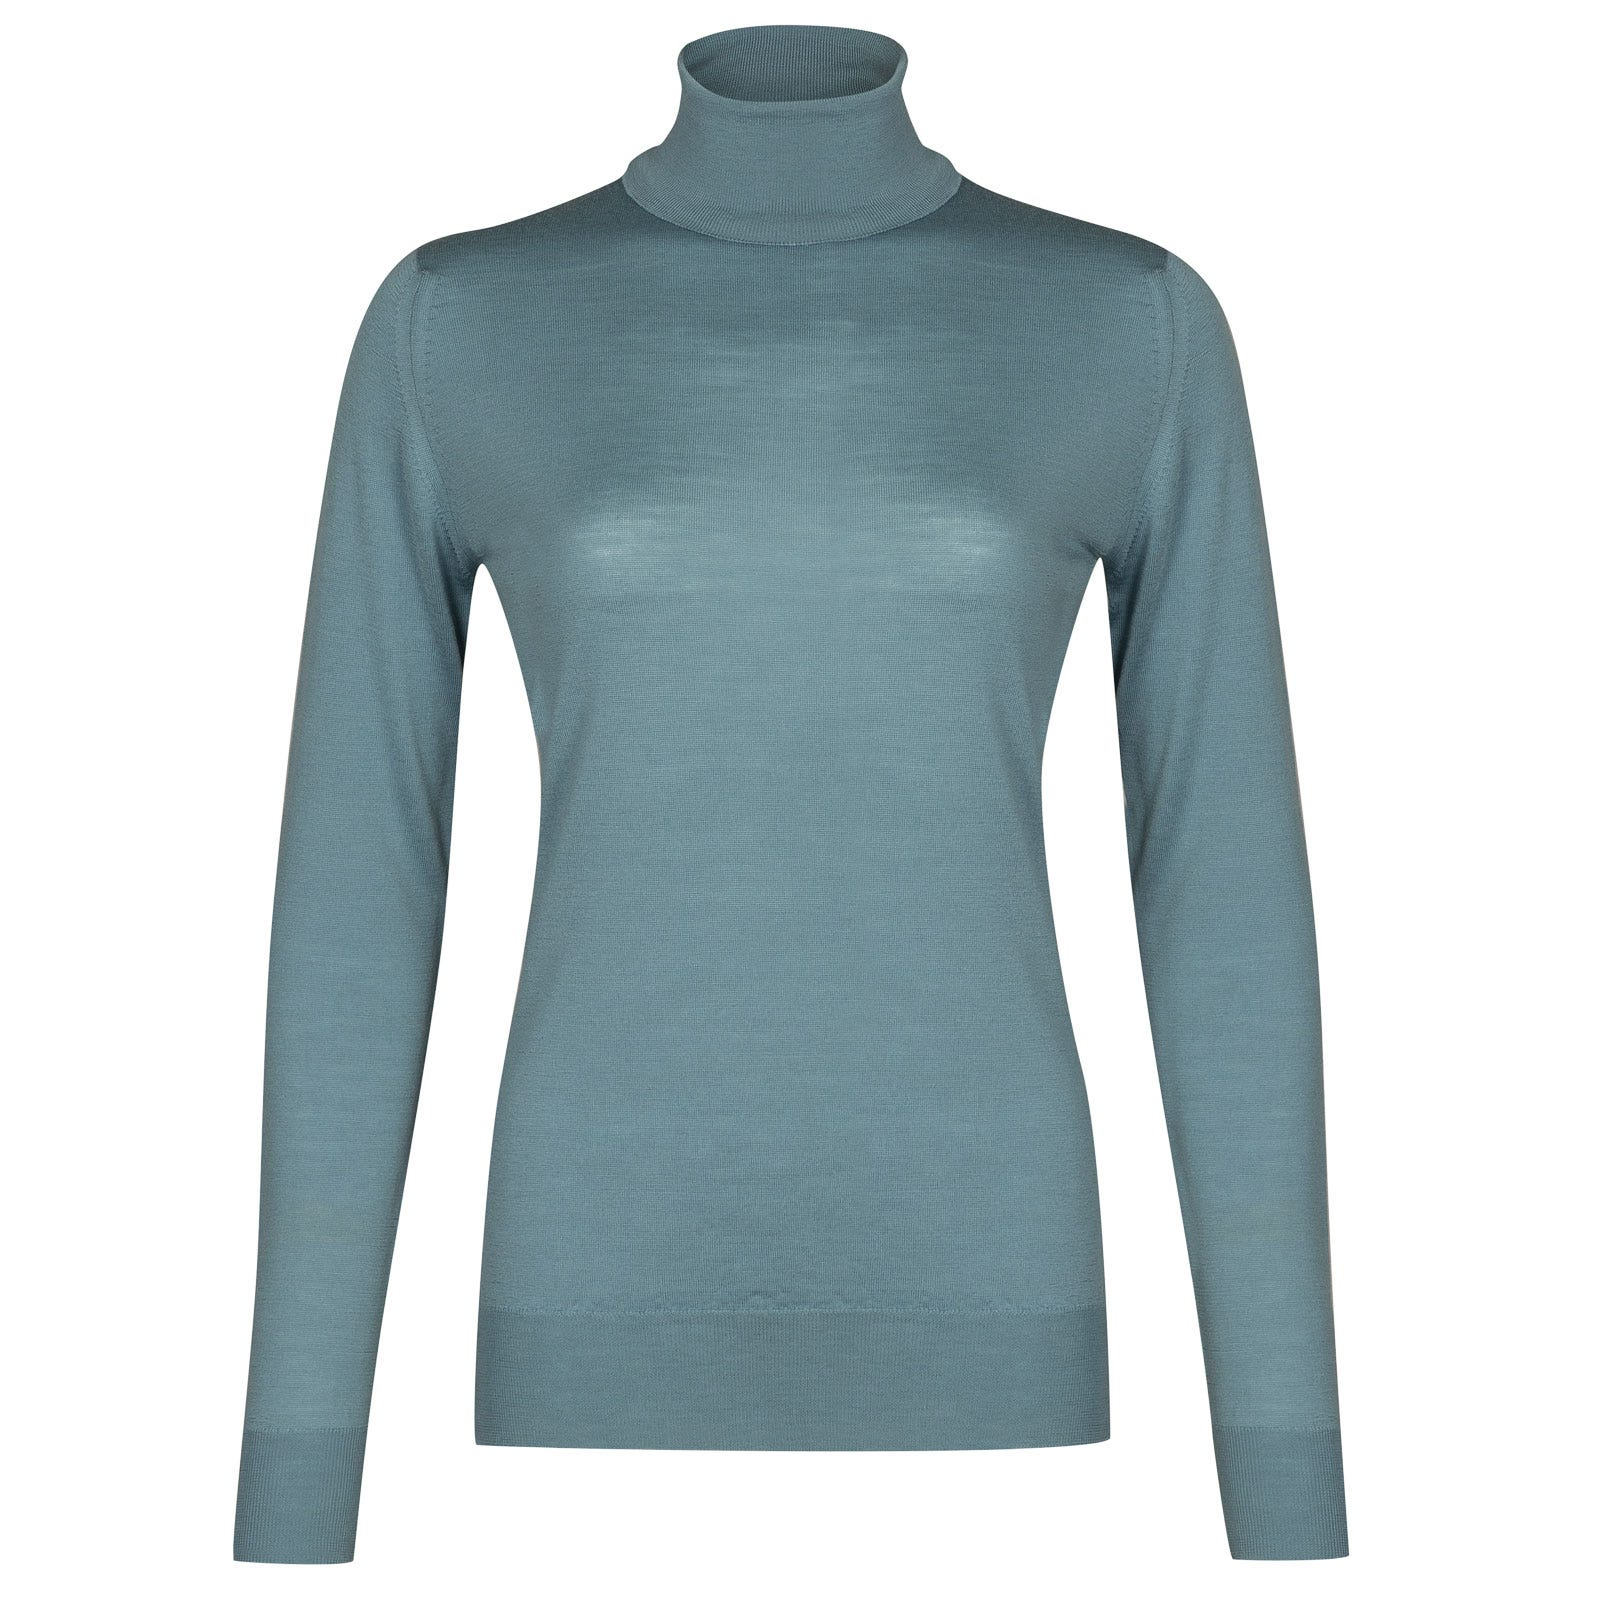 John Smedley Catkin Merino Wool Sweater in Summit Blue-L